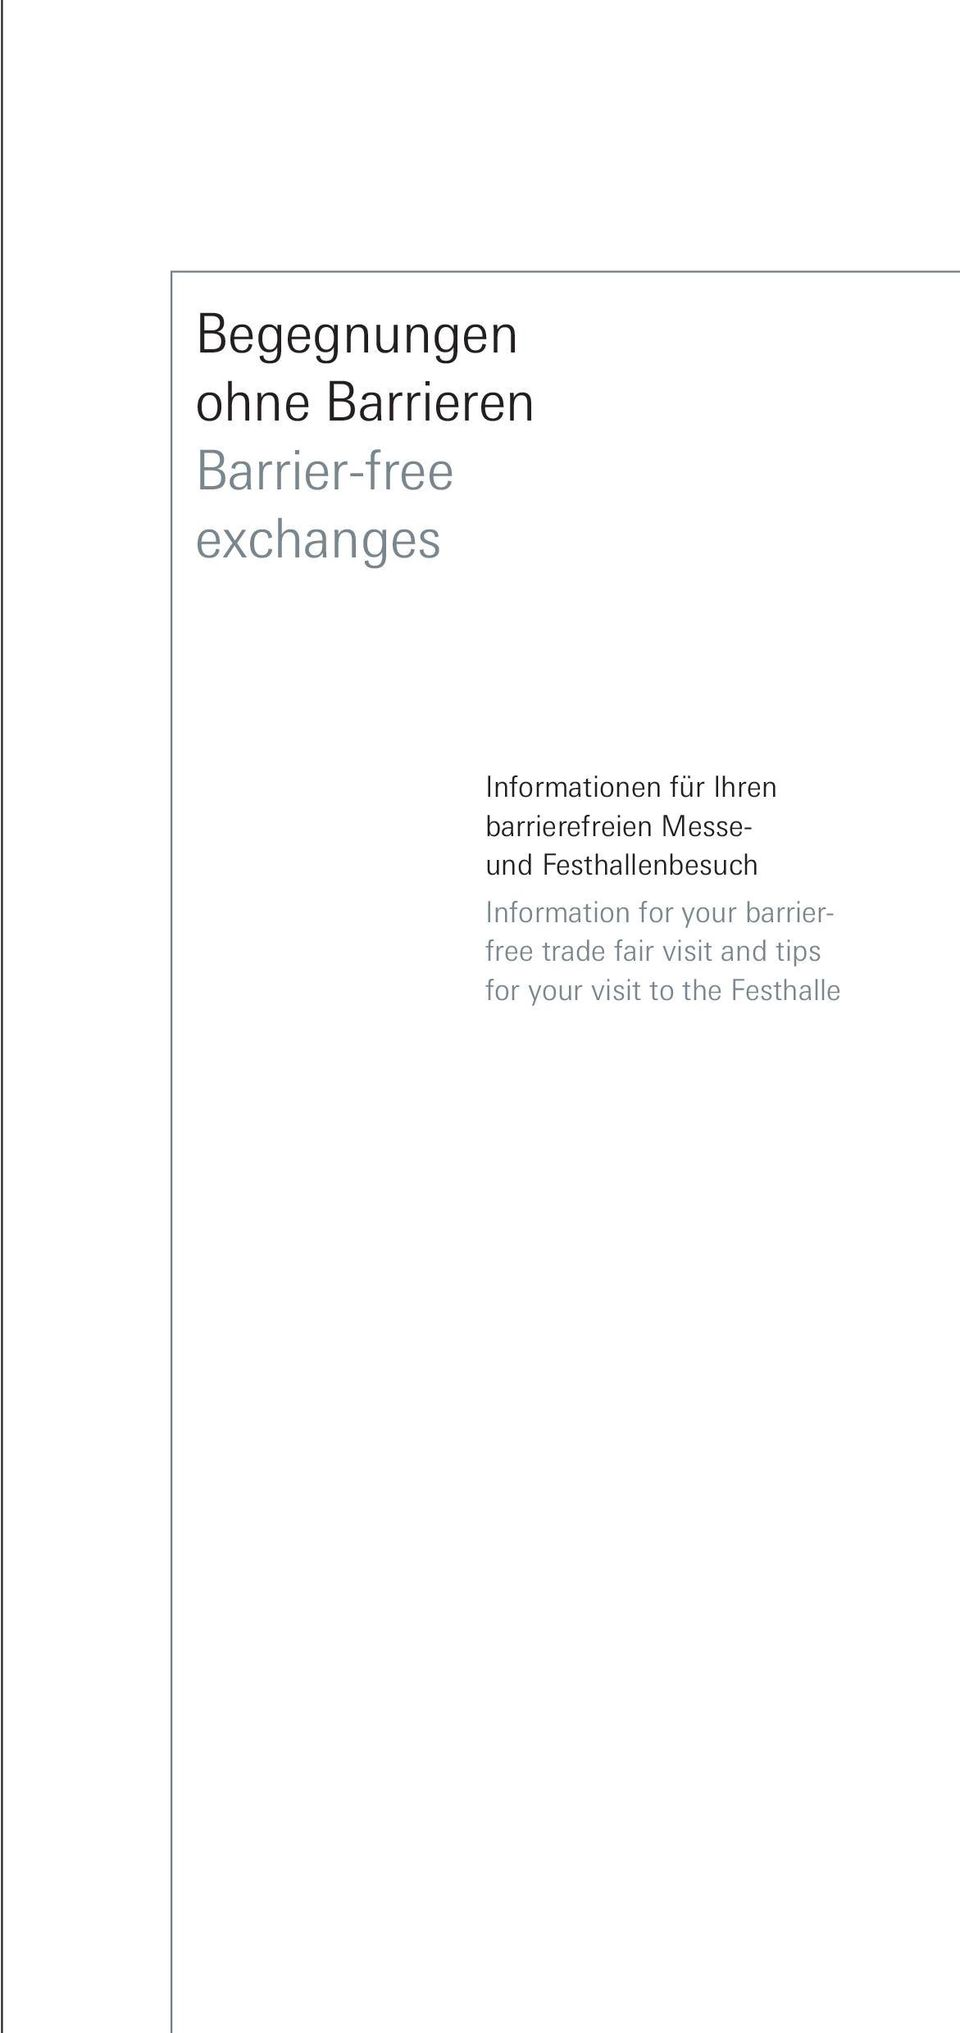 Festhallenbesuch Information for your barrierfree